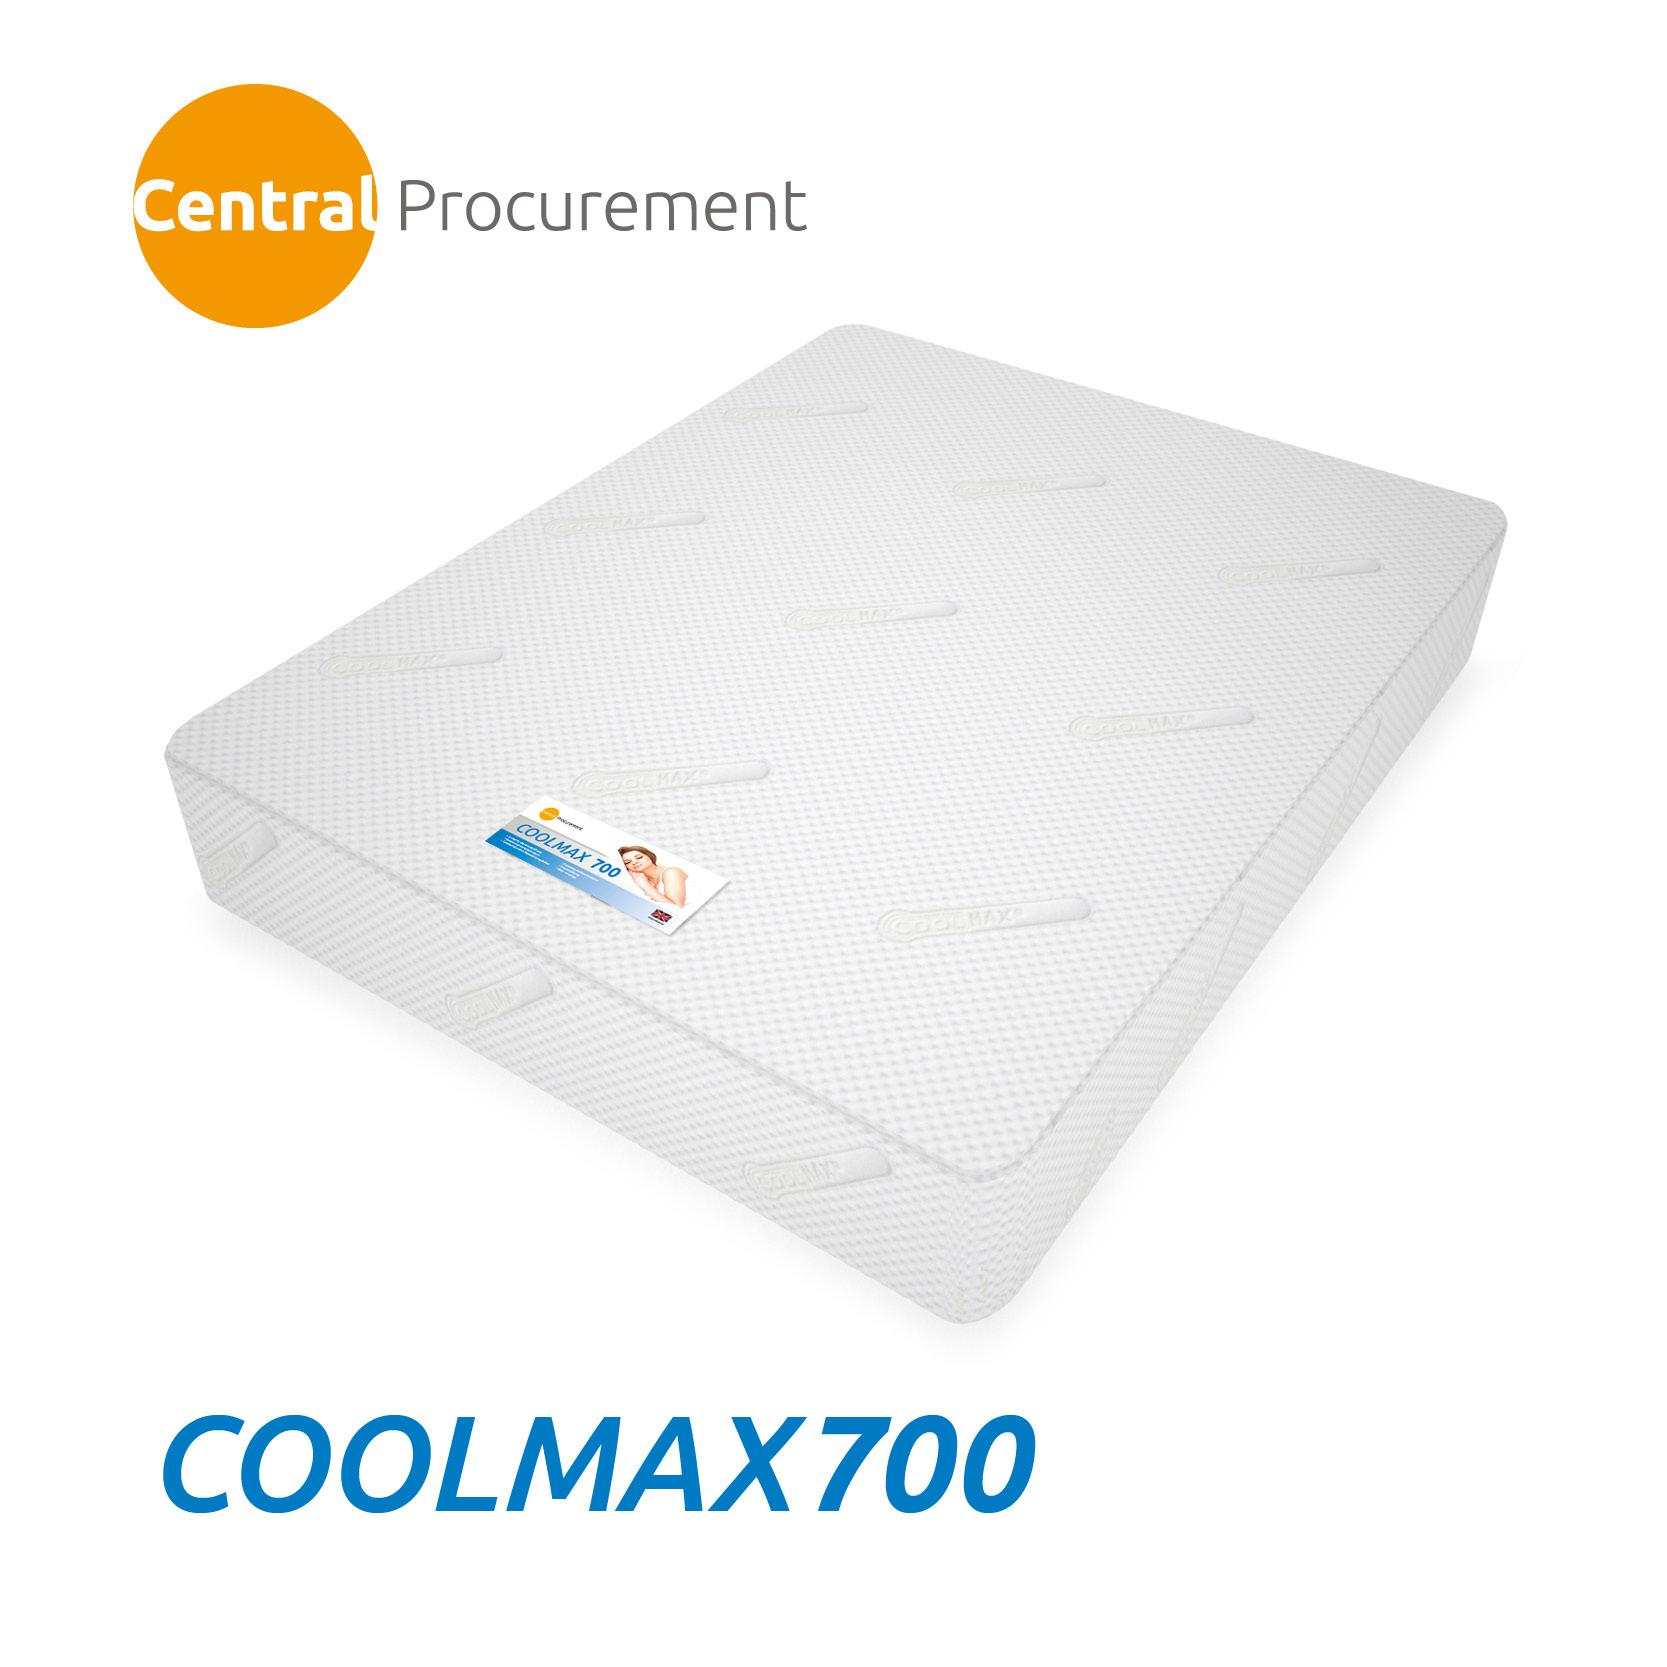 Coolmax 700 Tm Memory Foam Mattresses